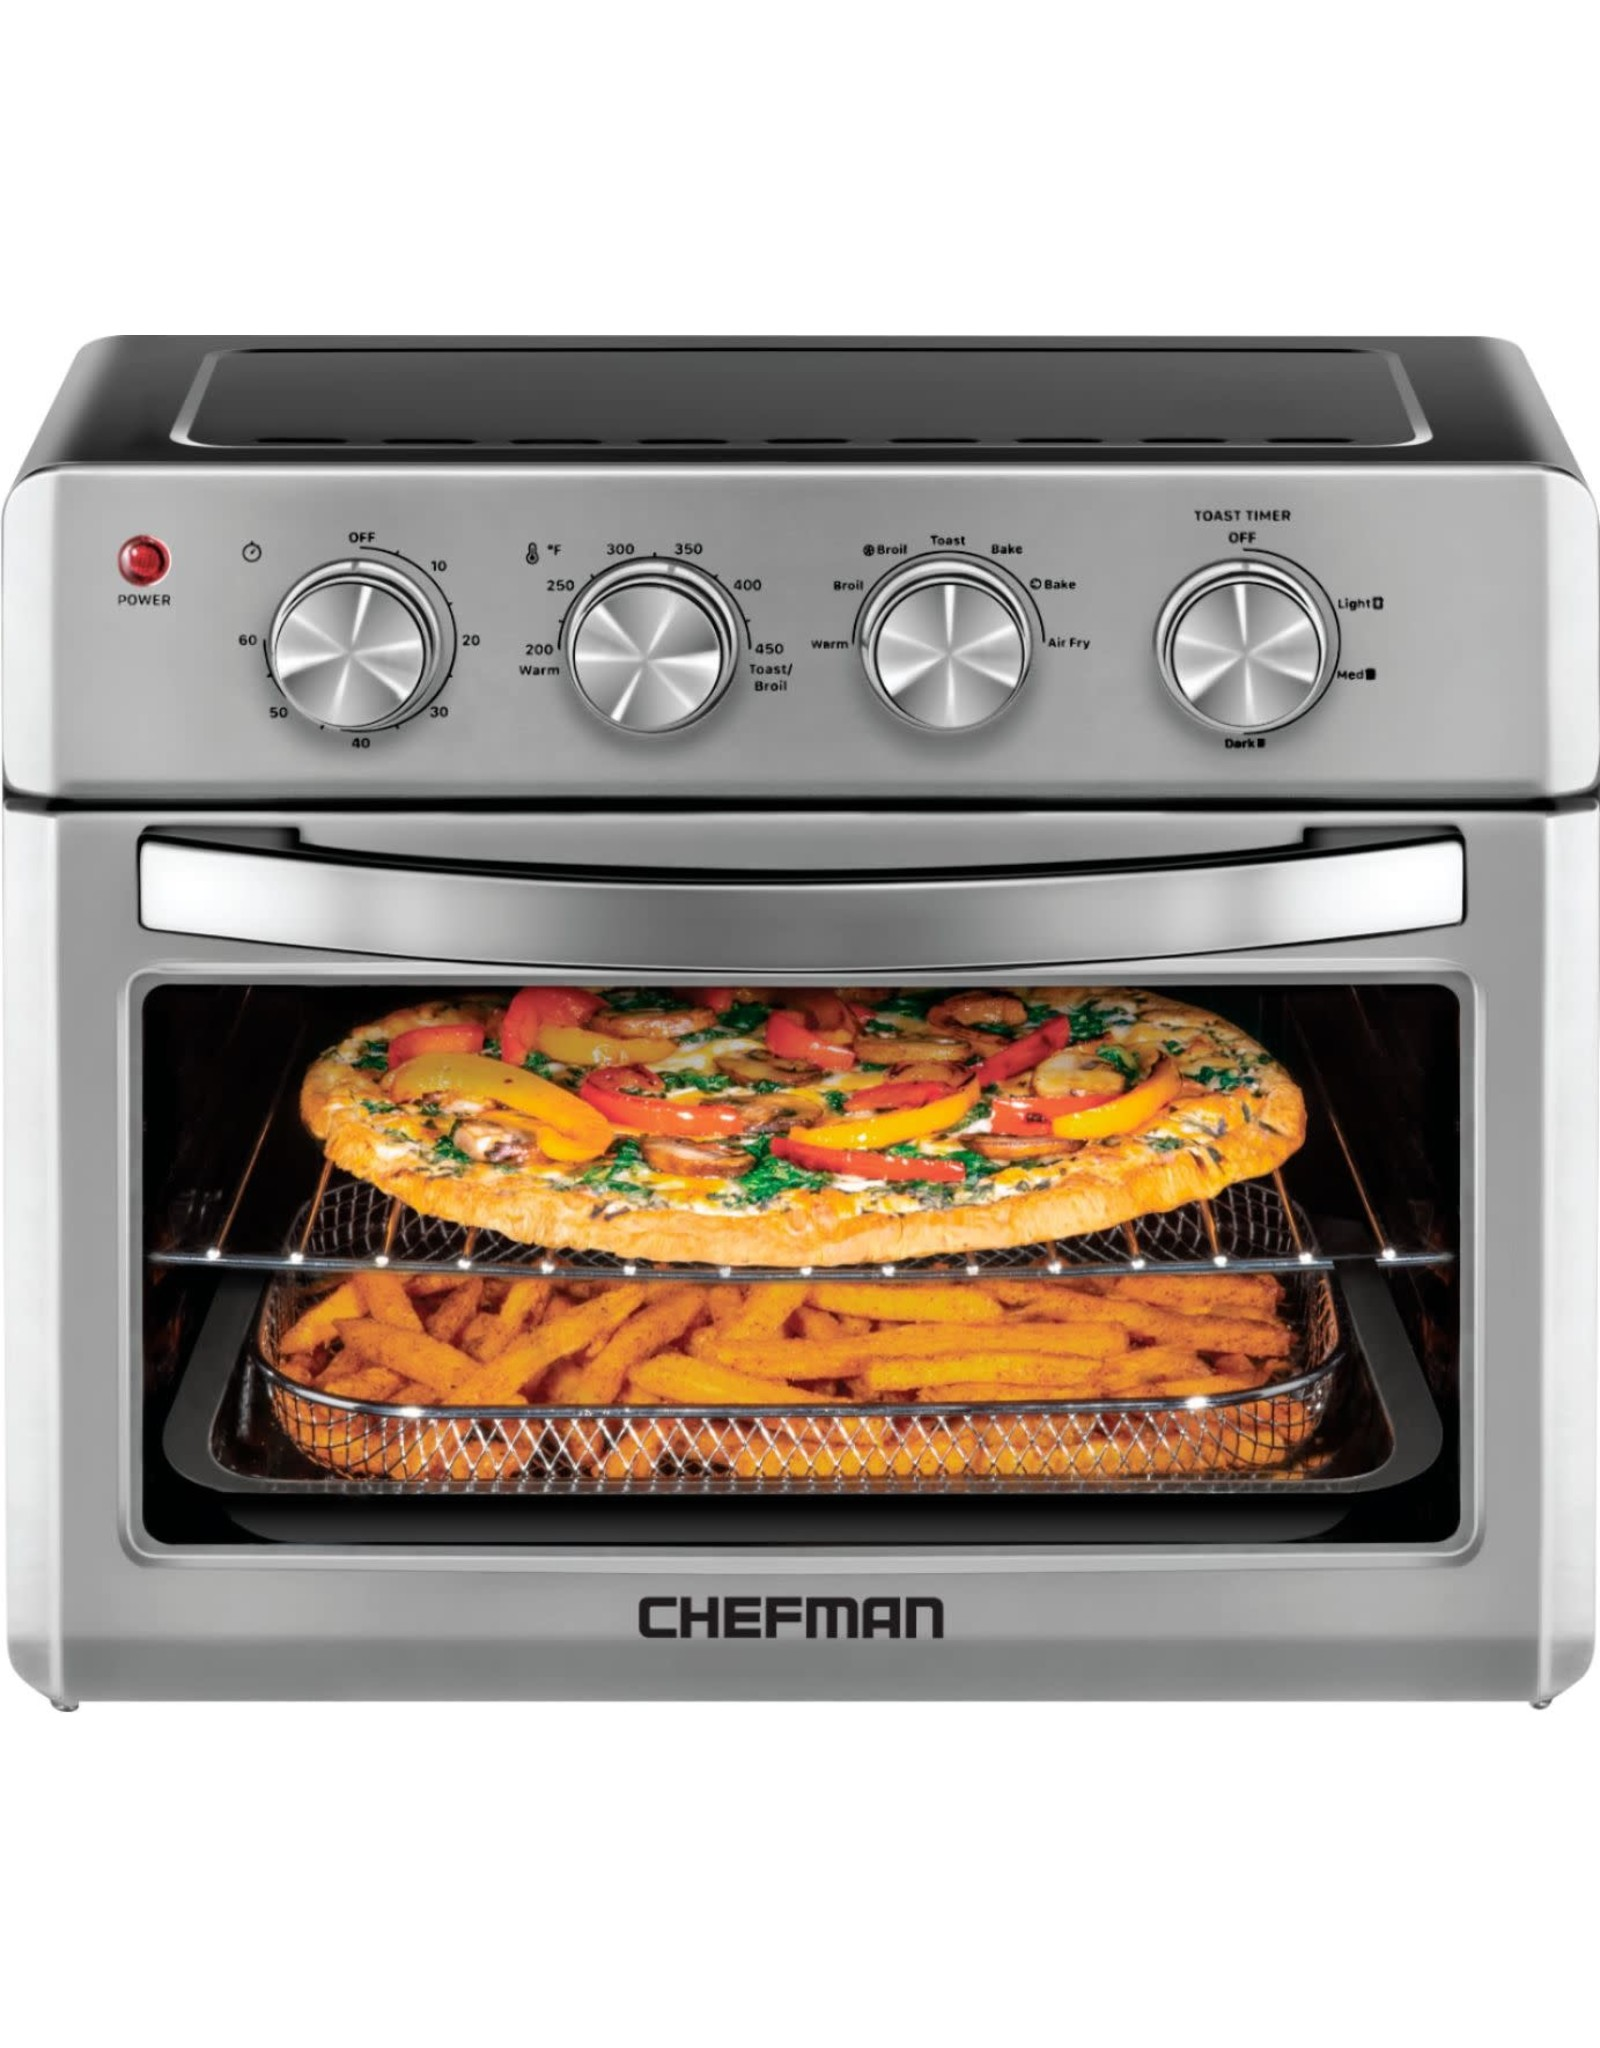 CHEFMAN RJ50-M Chefman - 25 L Analog Air Fryer Toaster Oven, 6 Slice, Convection w/ Auto Shut-Off, 60 Min Timer, Stainless Steel/Black - Stainless Steel